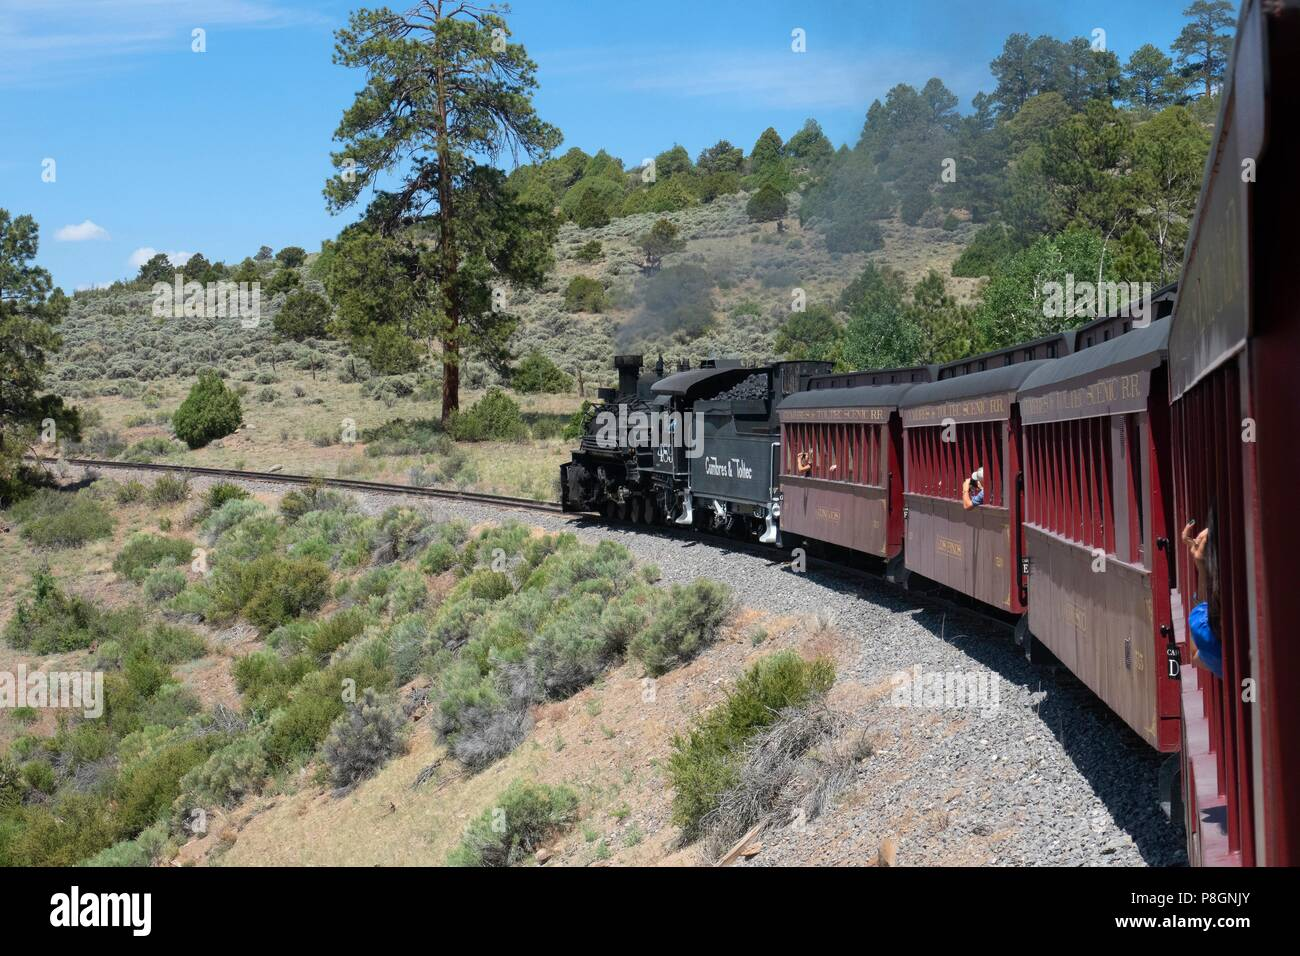 Restored steam engine 489 on the Cumbres and Toltec scenic narrow guage railway when the train load of tours through the inspiring scenery in New Mexi - Stock Image